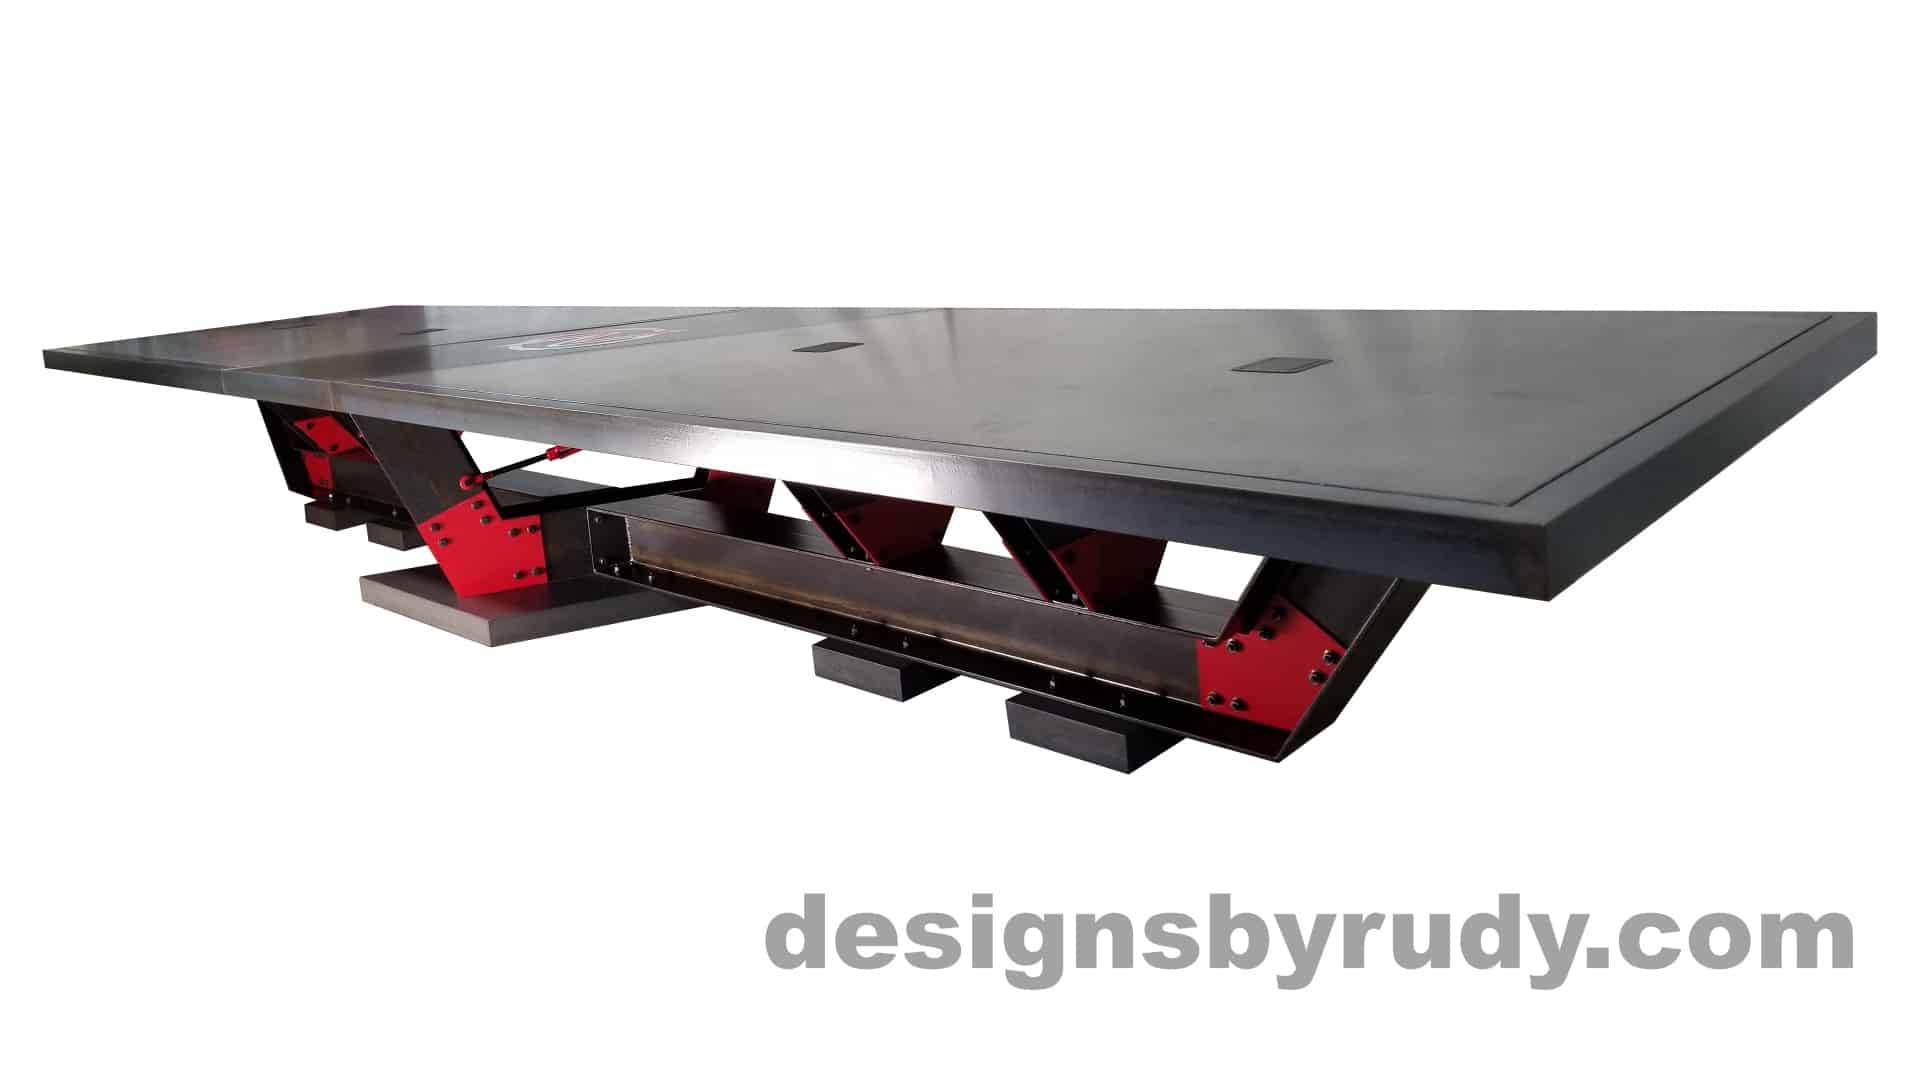 2 Steel and concrete conference table, design and fabrication by Designs by Rudy , angle 1 view